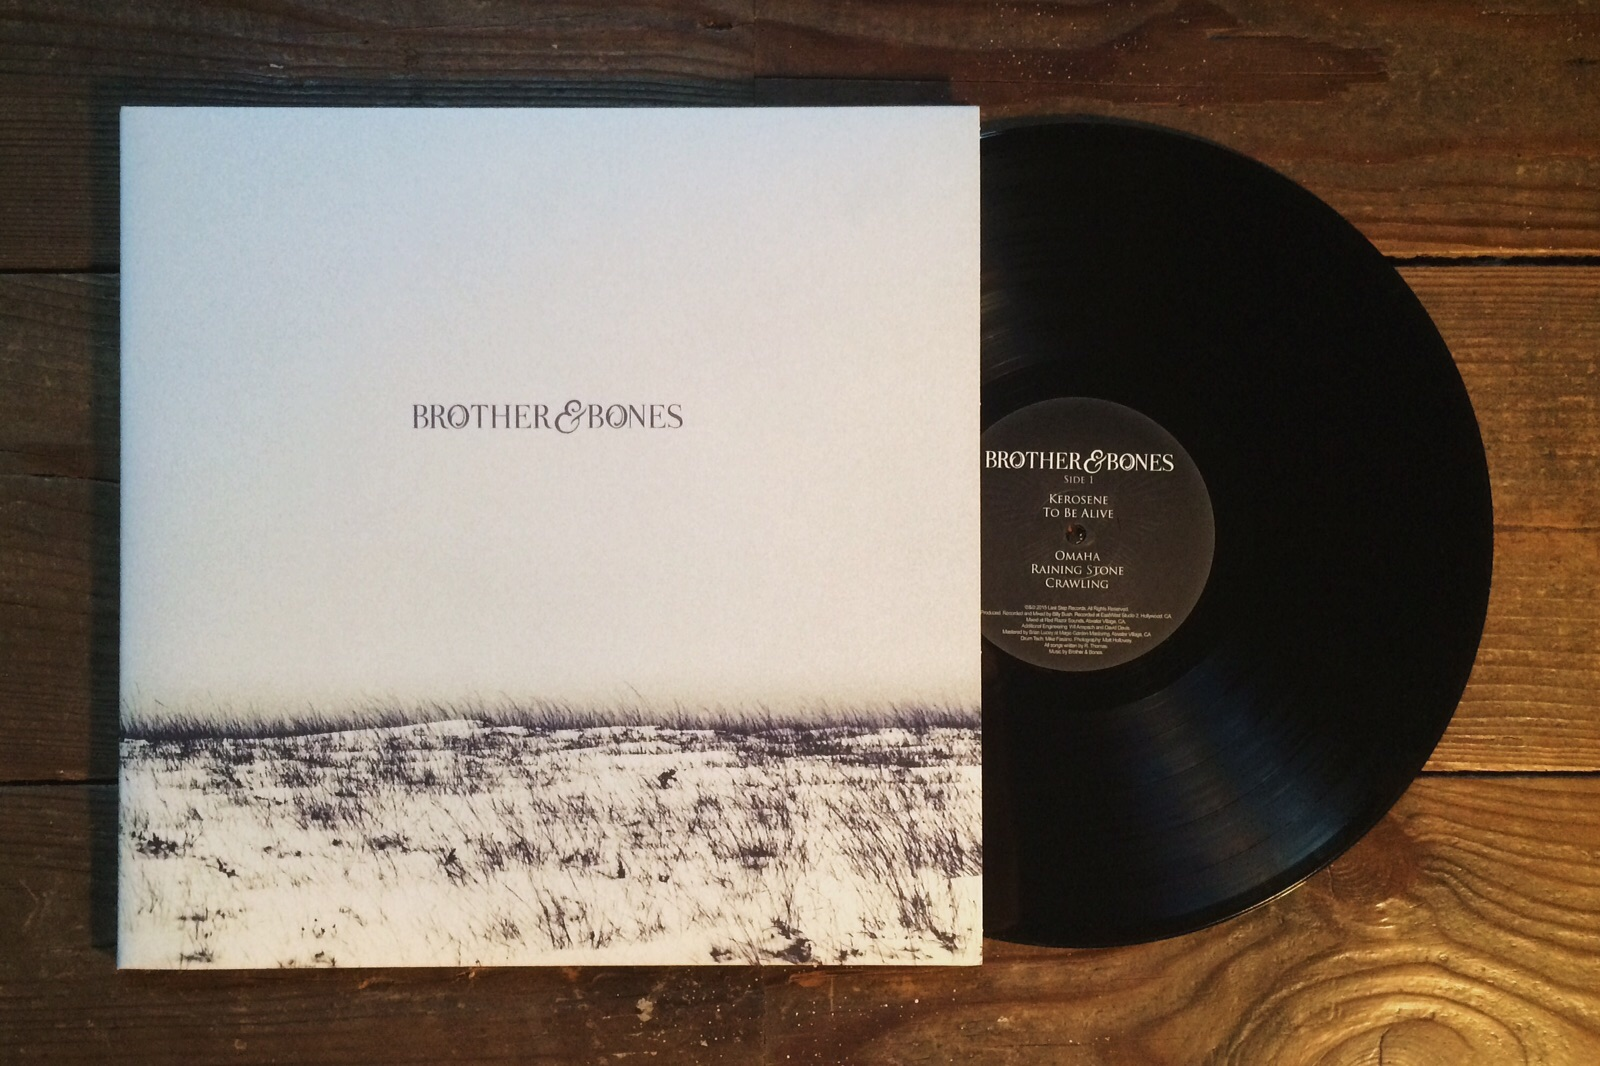 "'Brother & Bones' 12"" VINYL - ALBUM"